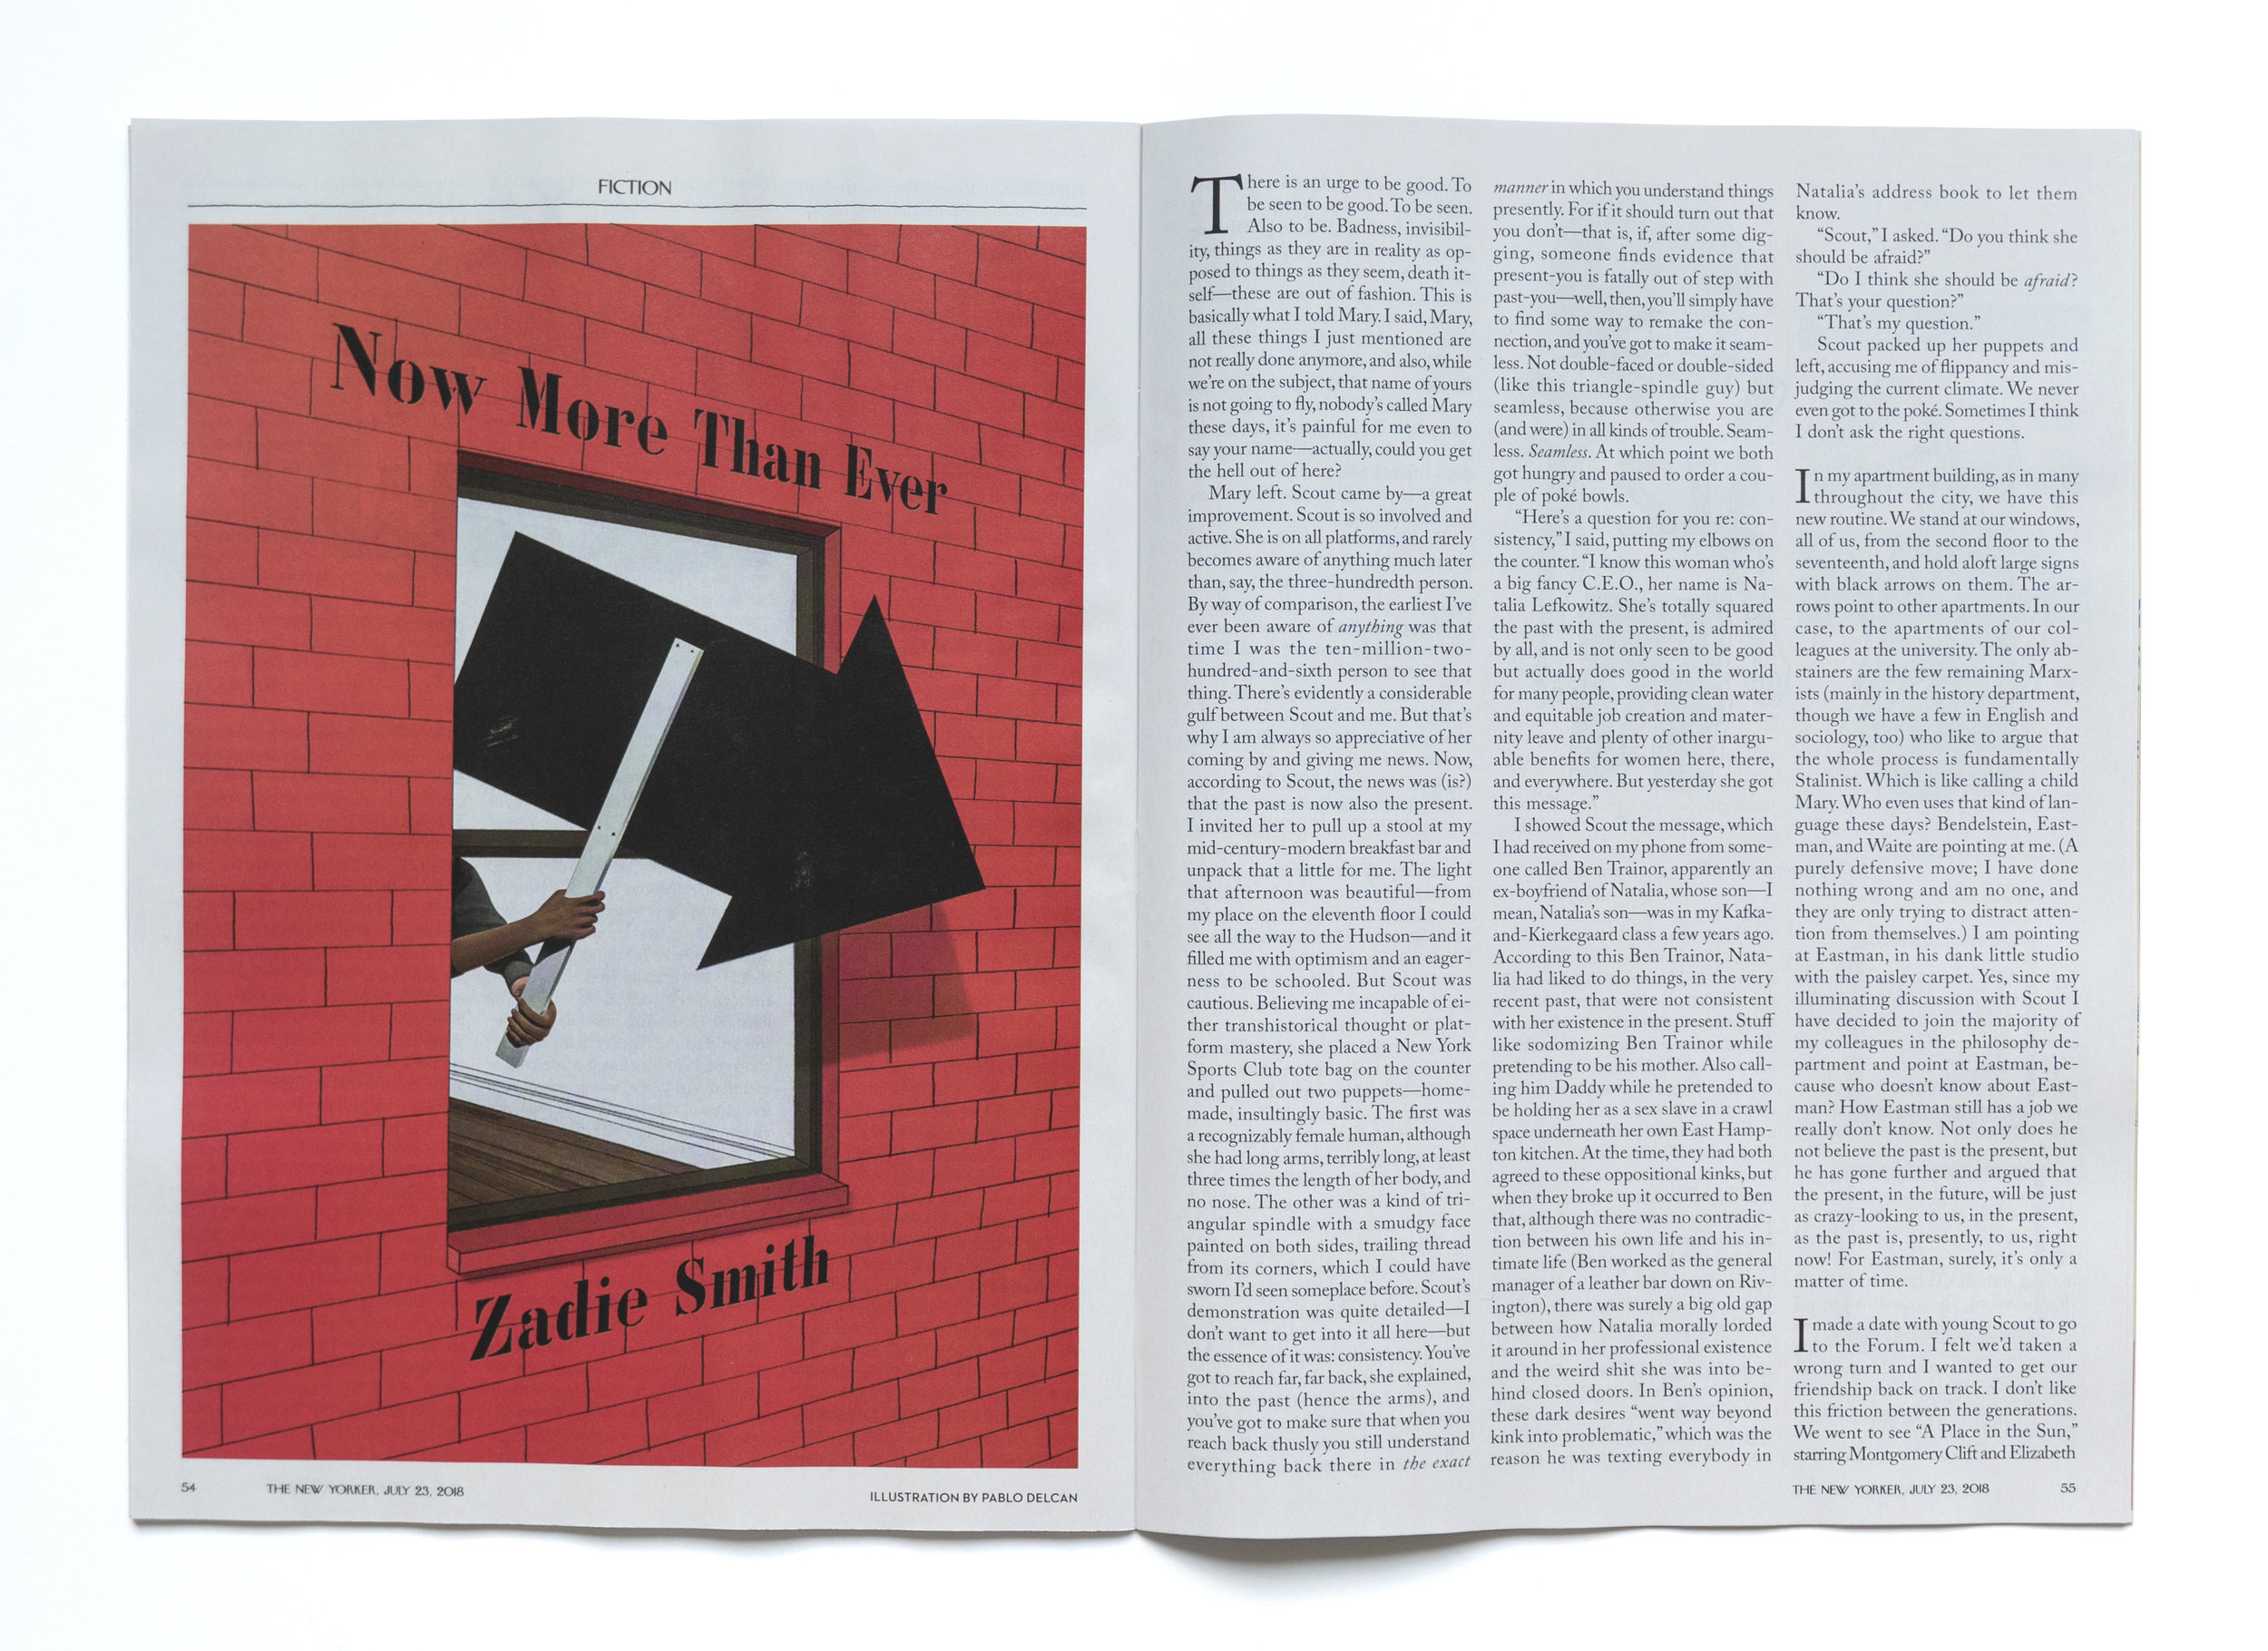 Now More Than Ever. The New Yorker.